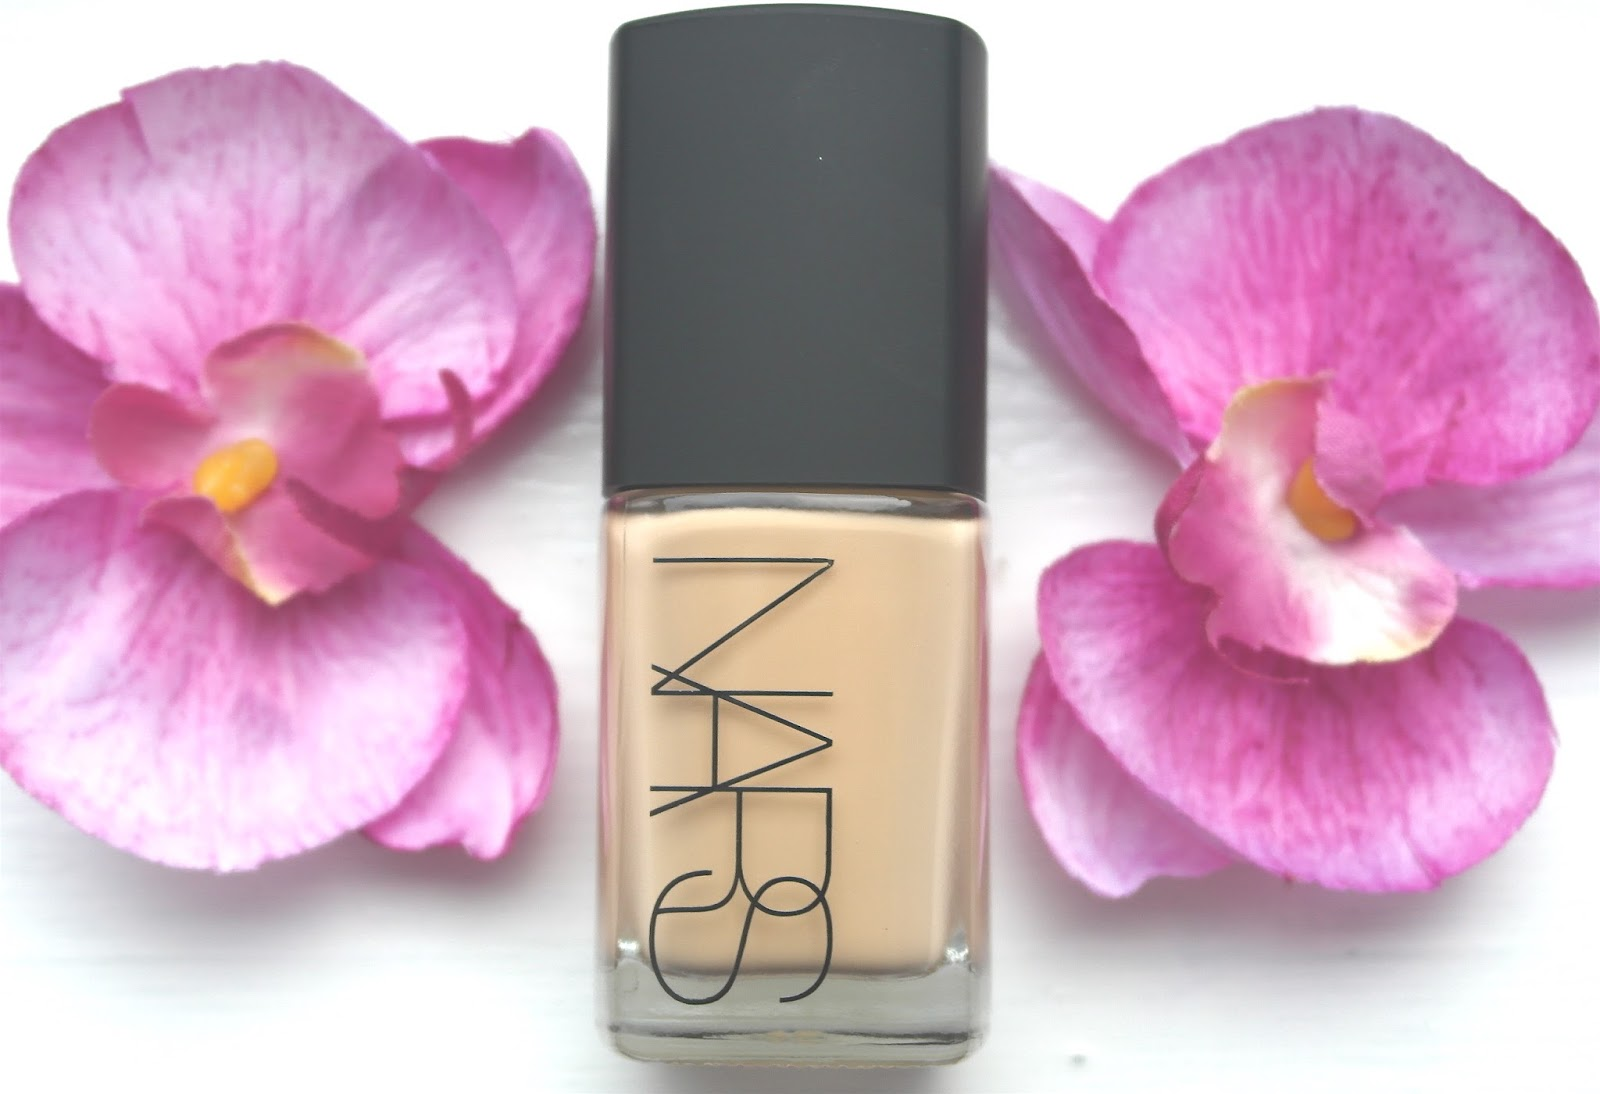 Nars Sheer glow foundation fuji